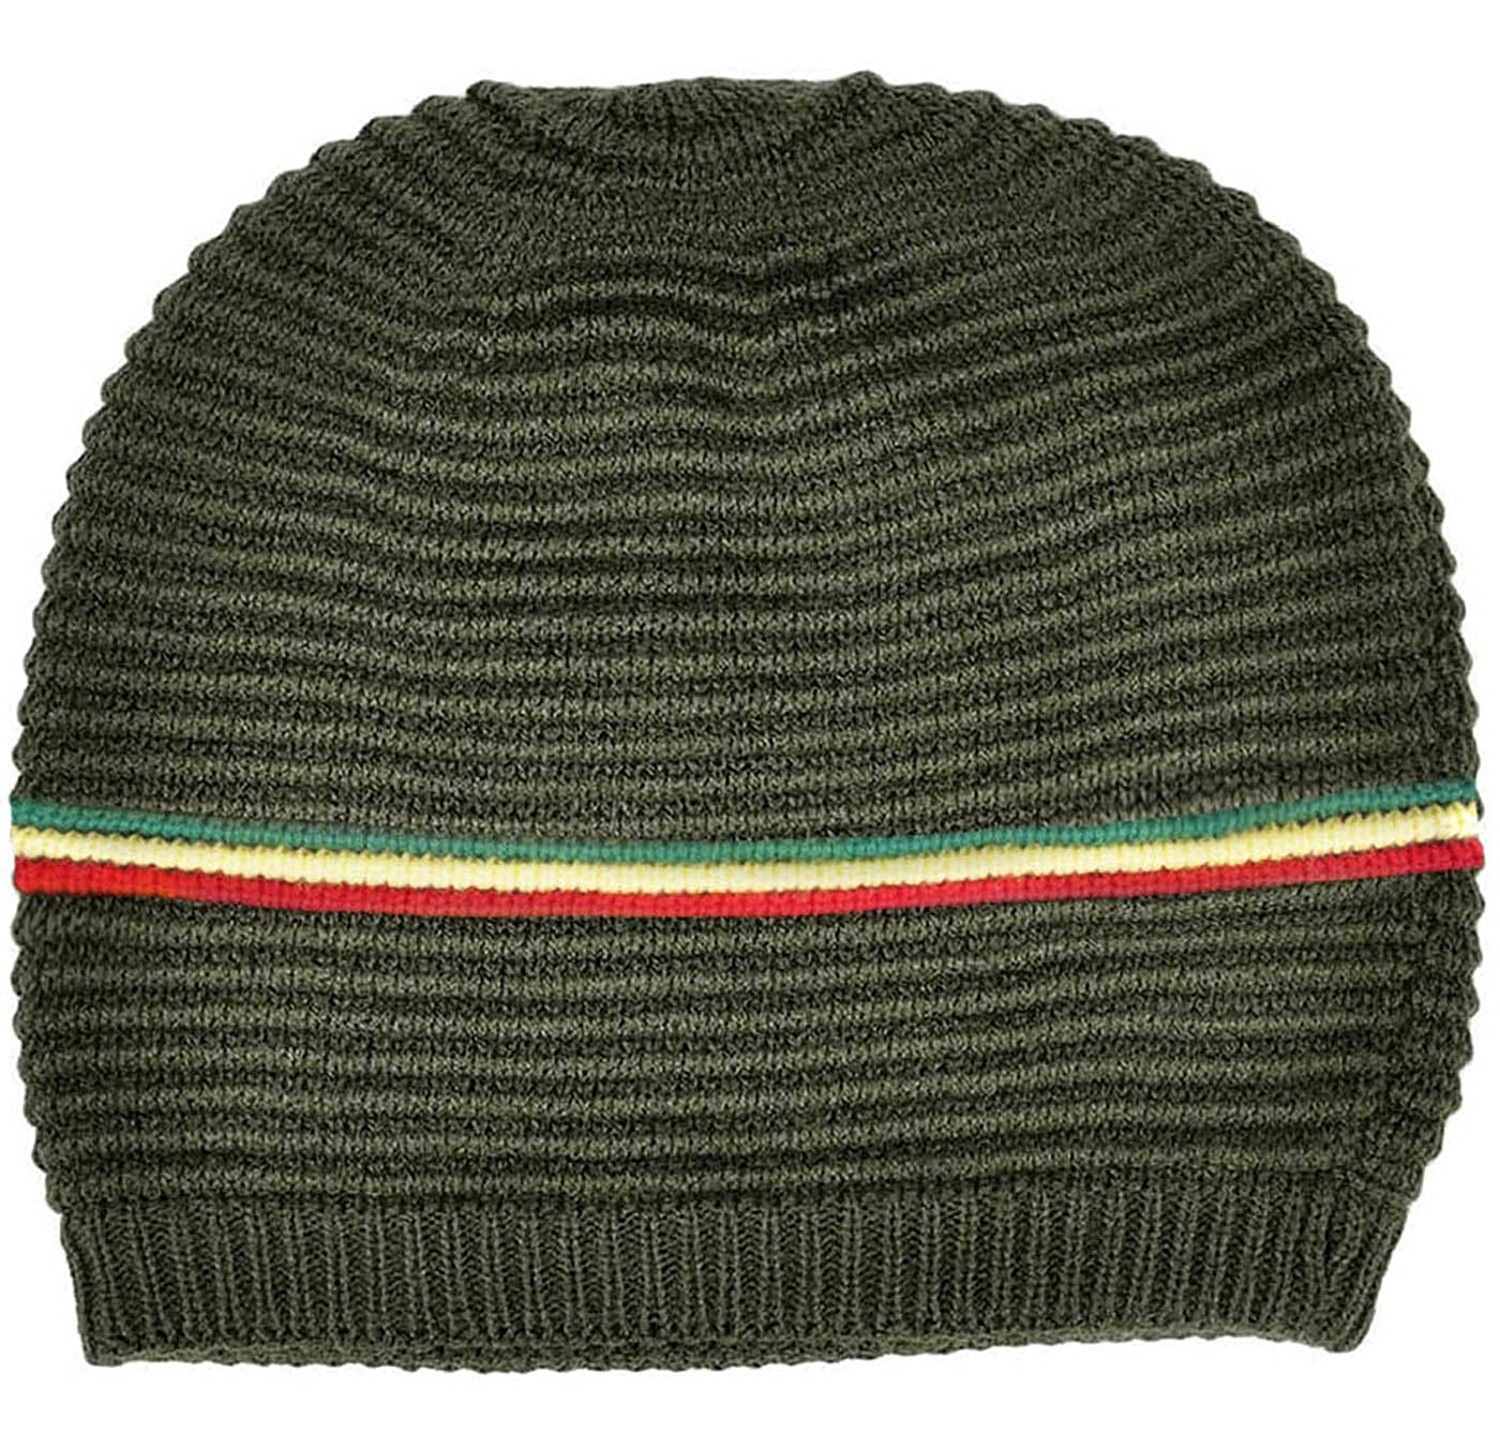 8281861ae02 Men   Women s Retro Oversized Slouchy Winter Knit Beanie Hat - Color ...